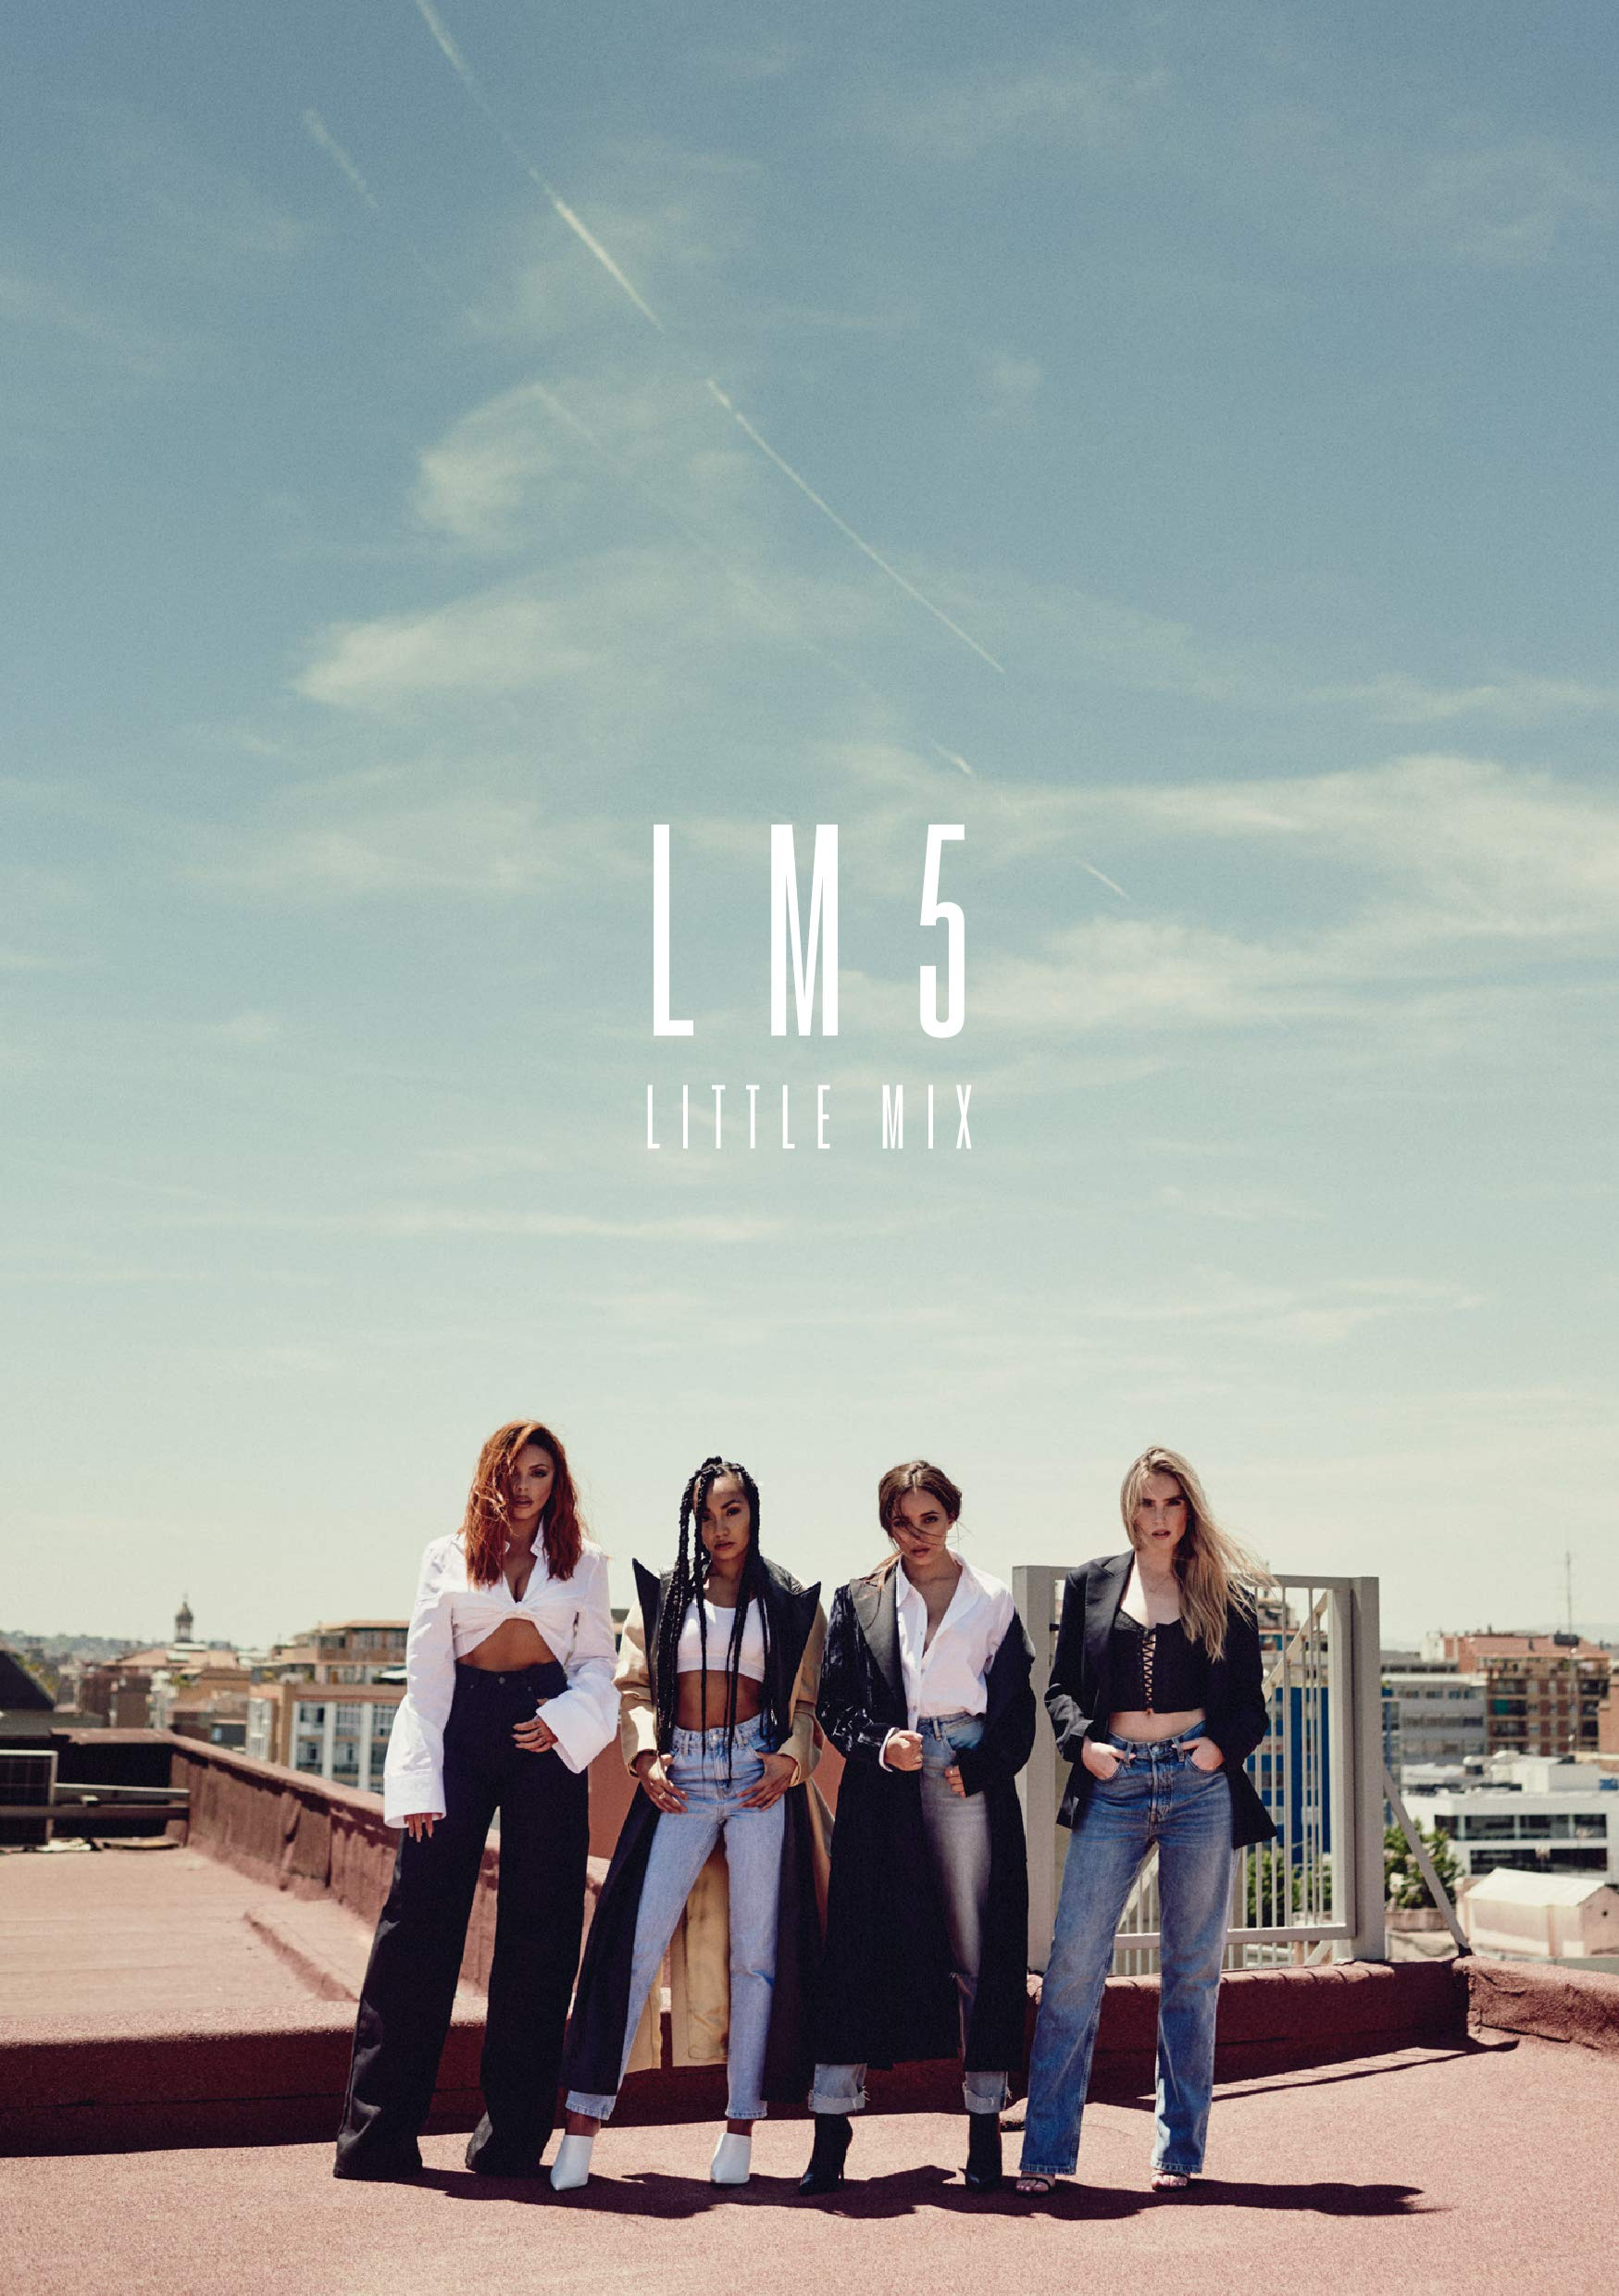 CD : Little Mix - Lm5 (Deluxe Edition, United Kingdom - Import)